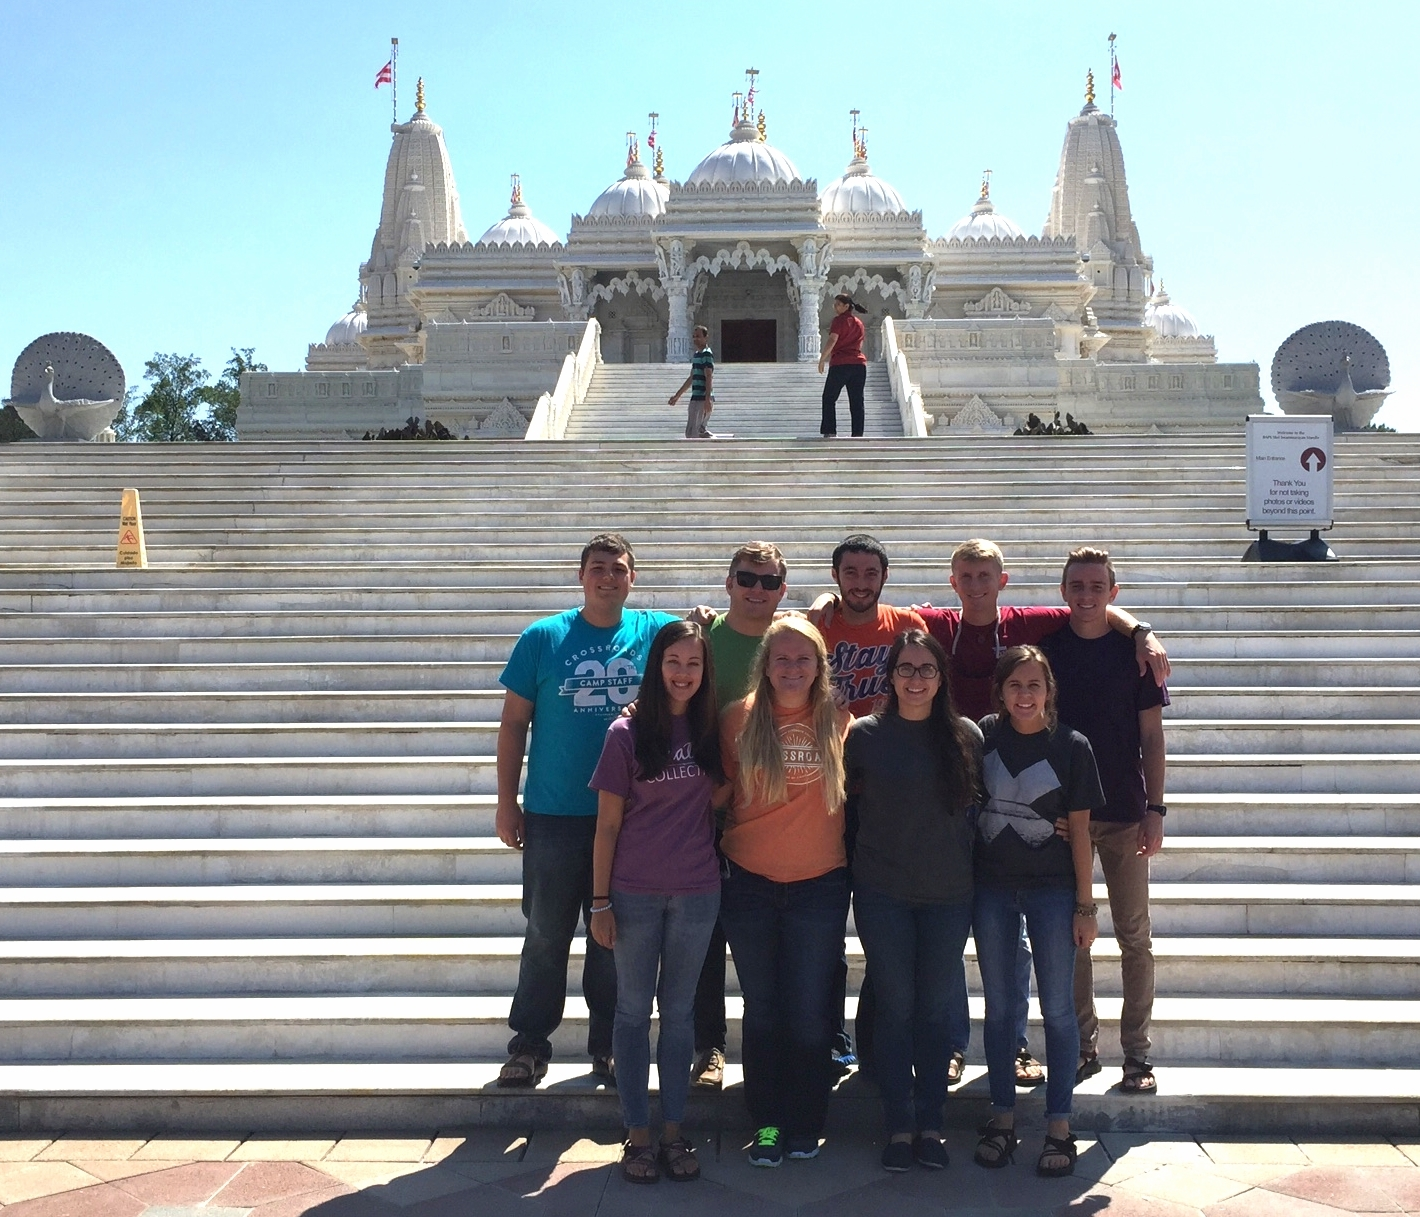 The largest Hindu temple outside of India.     CDHX, from left to right:   (top row) Tucker Ficklin, Zach Dickson, Josh Consalvo, Connor Moon, Zac Crook,   (bottom row) DeAnna McEntire, Lauren Ulmer, Jenny Gillespie, Bianca Dragul